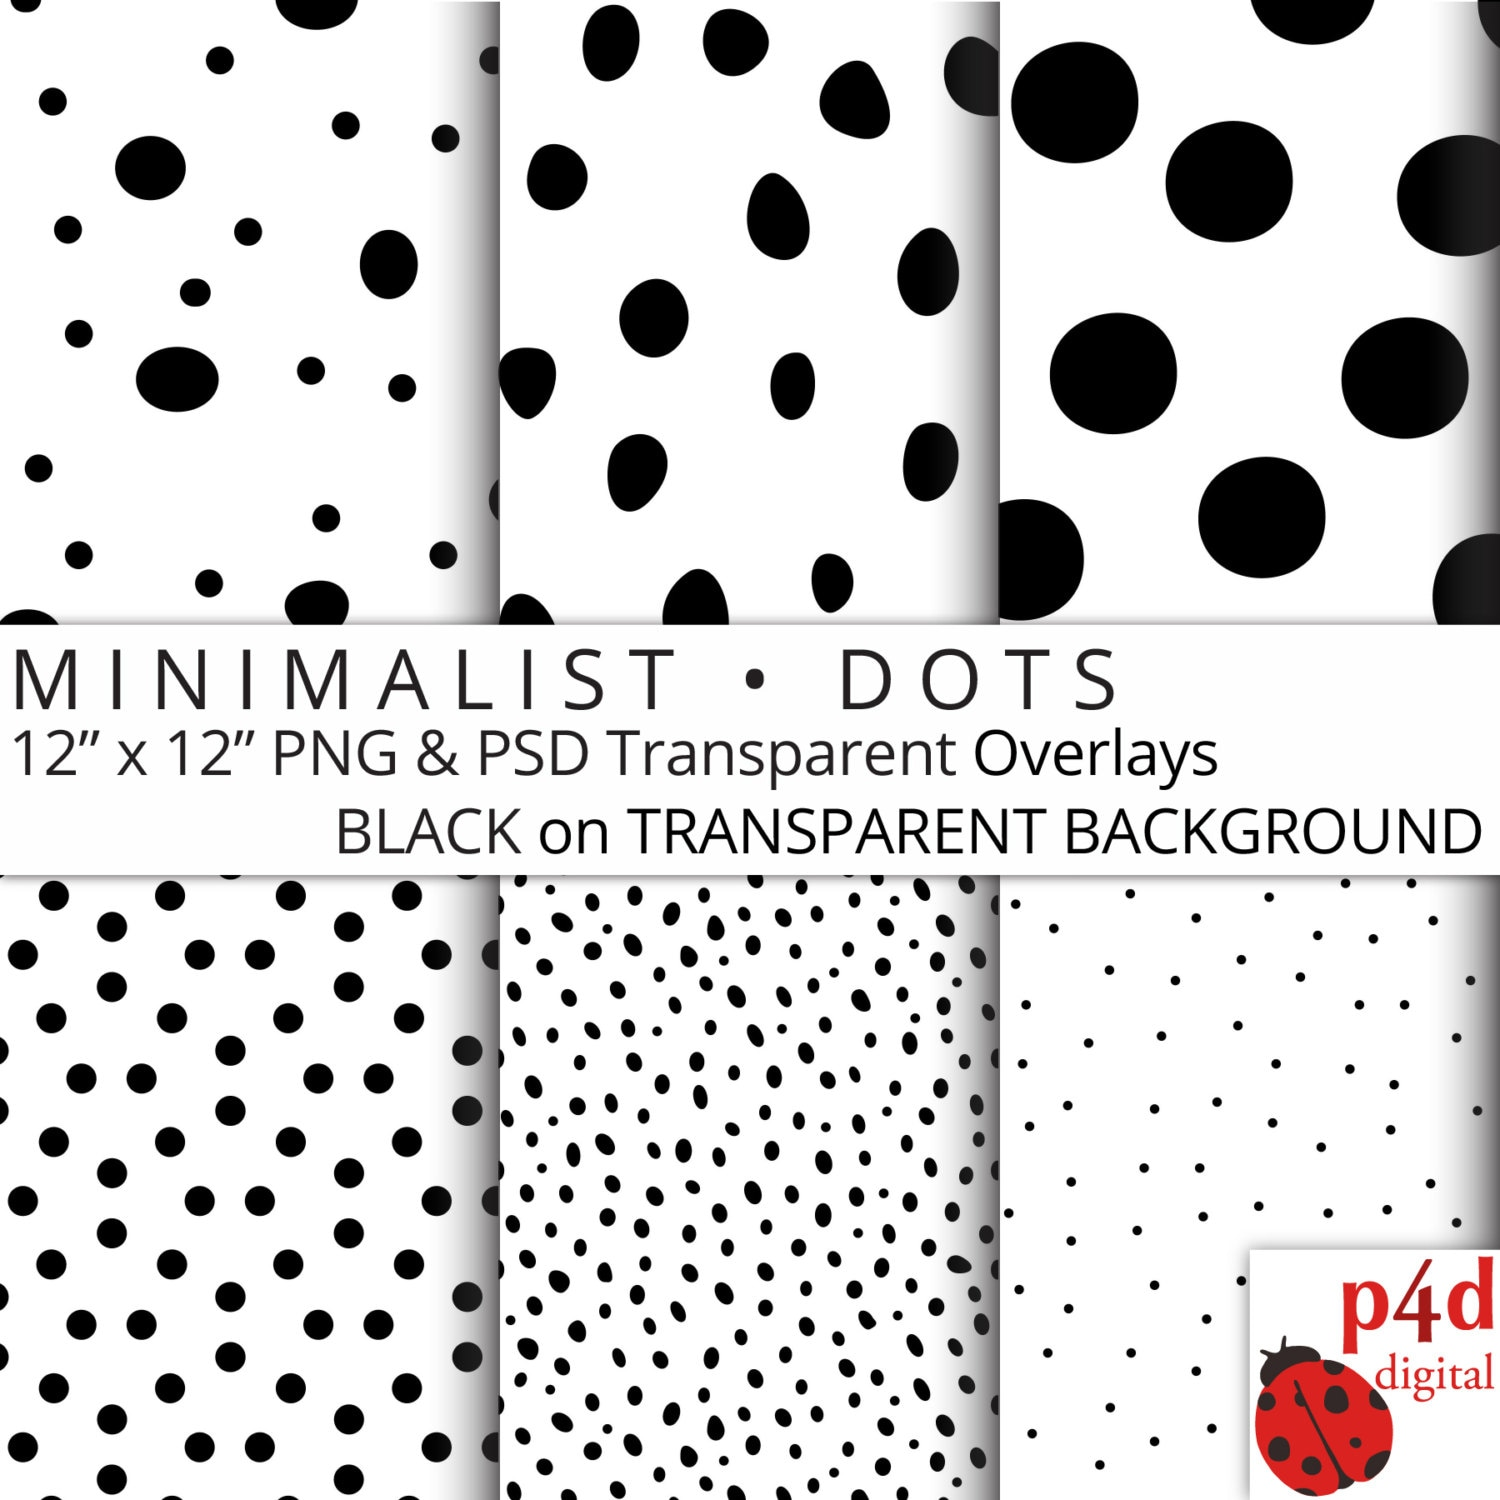 Minimalist Dots Black on Transparent Background Digital